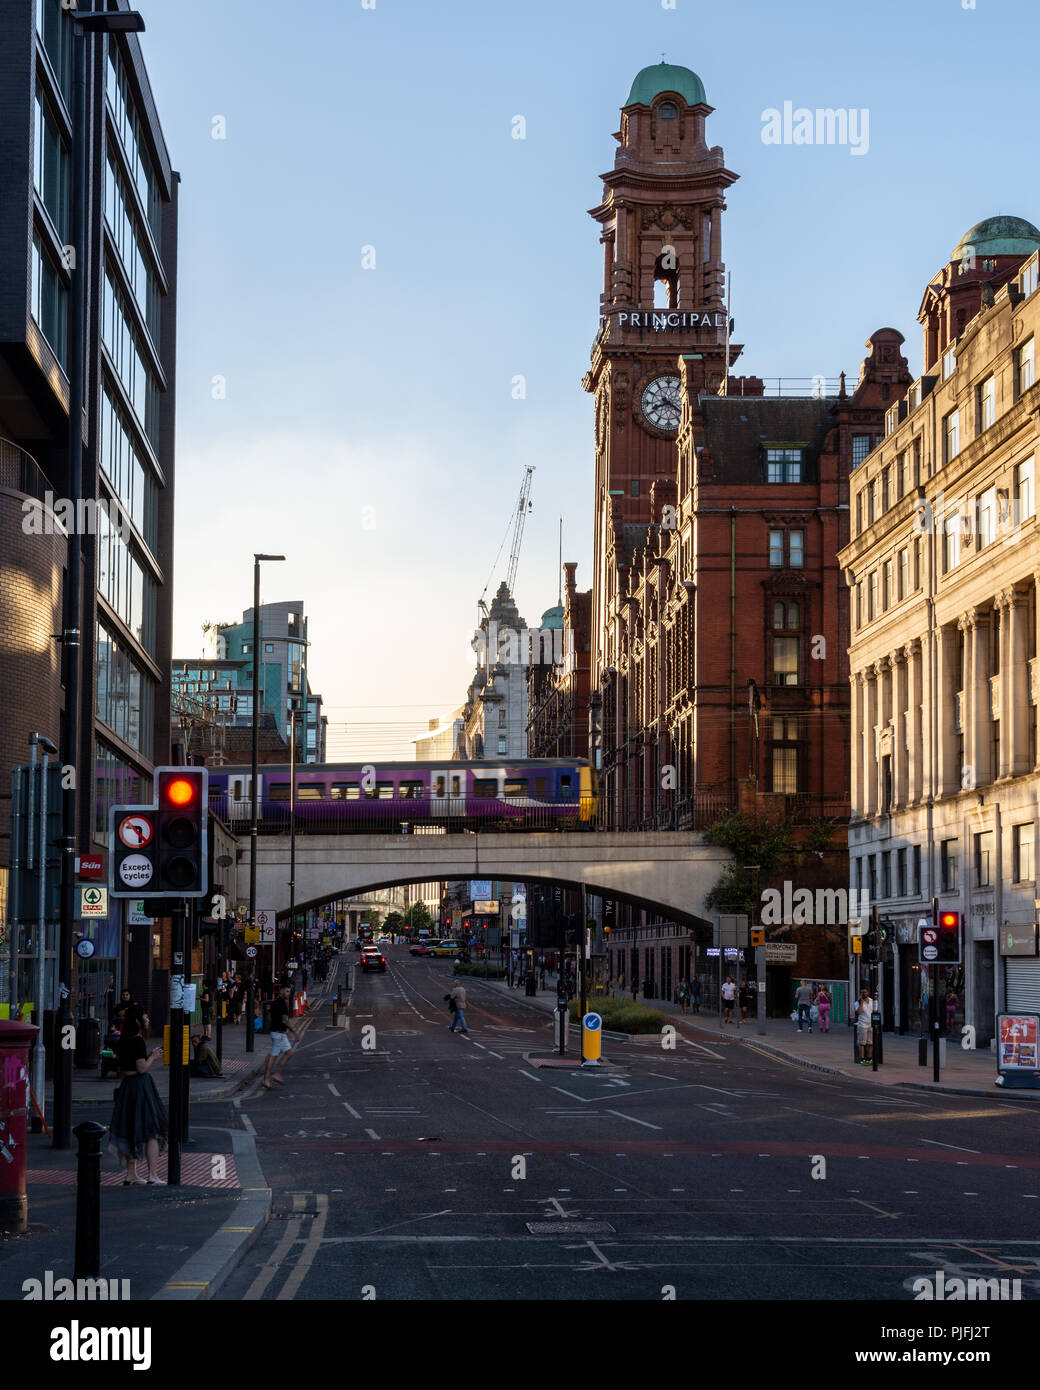 Manchester, England, UK - June 30, 2018: A Northern Rail Class 323 electric commuter train crosses Manchester's Oxford Road, with the clock tower of t - Stock Image